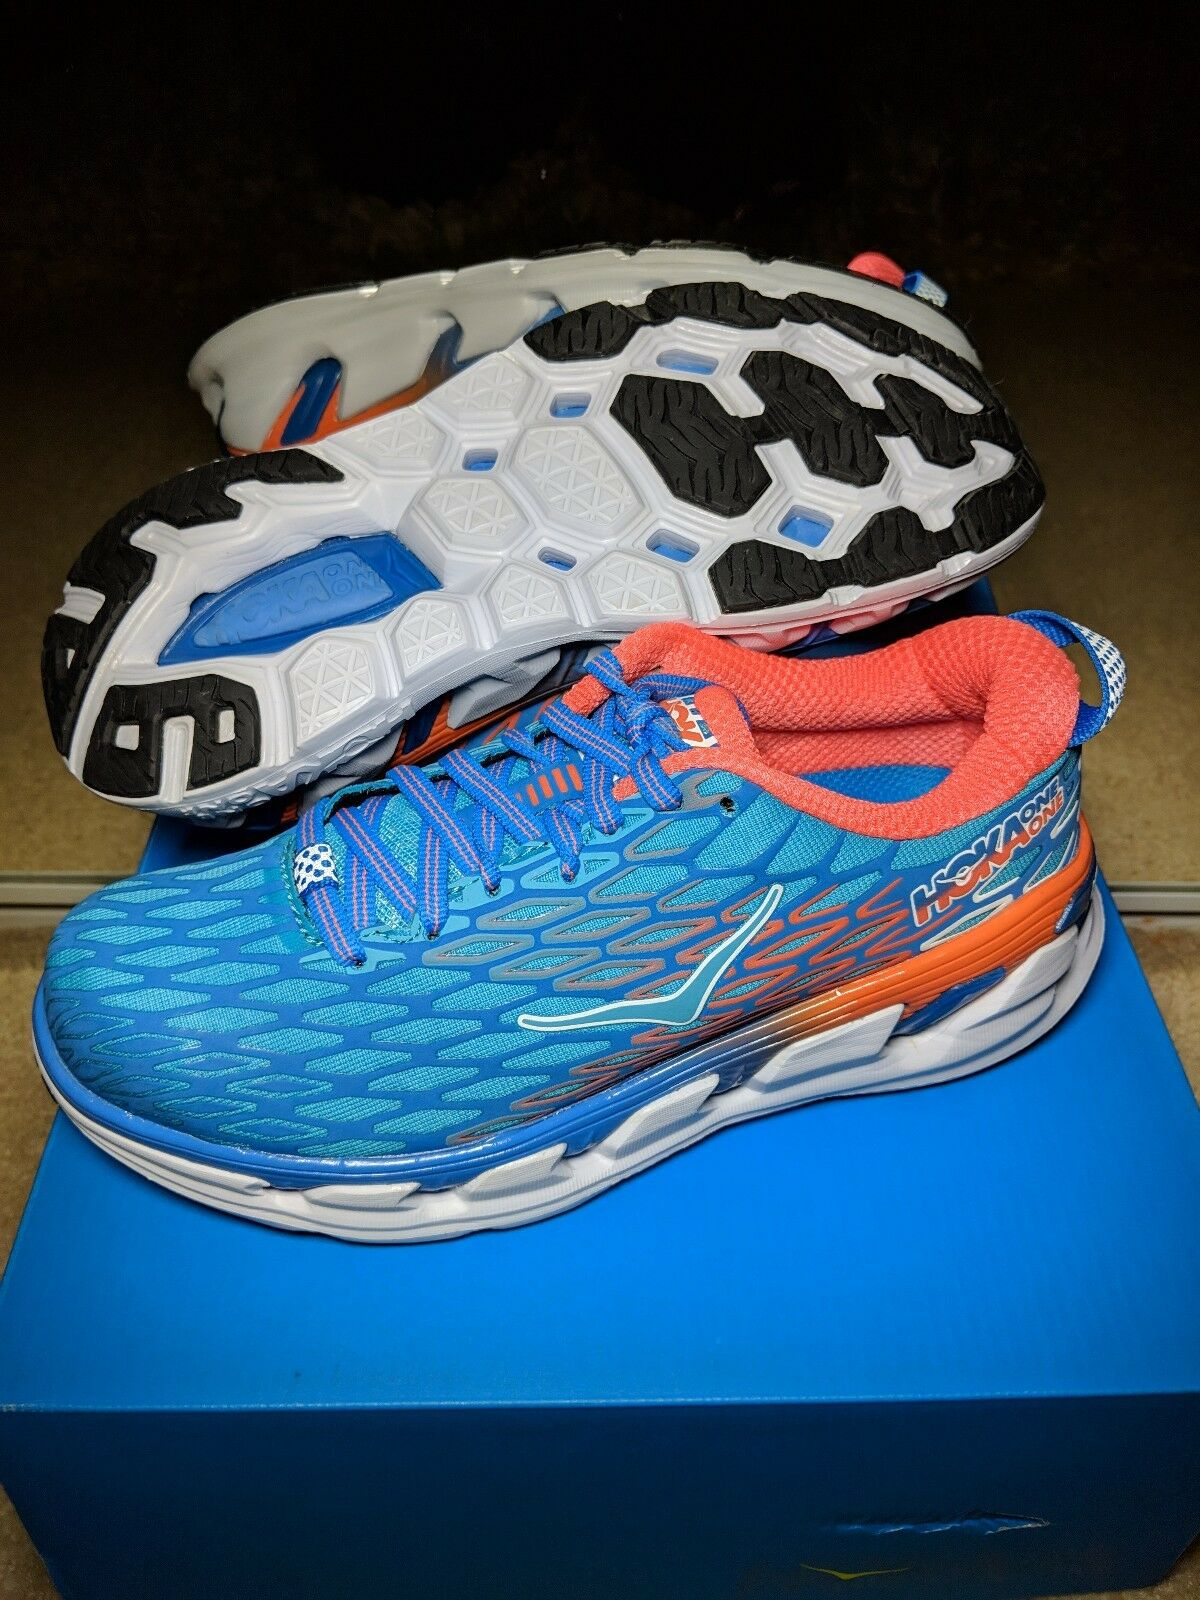 NEW IN BOX HOKA ONE ONE donna 5 VANQUISH VANQUISH VANQUISH 2 FRENCH blu   ACID FREE SHIPPING 4365af